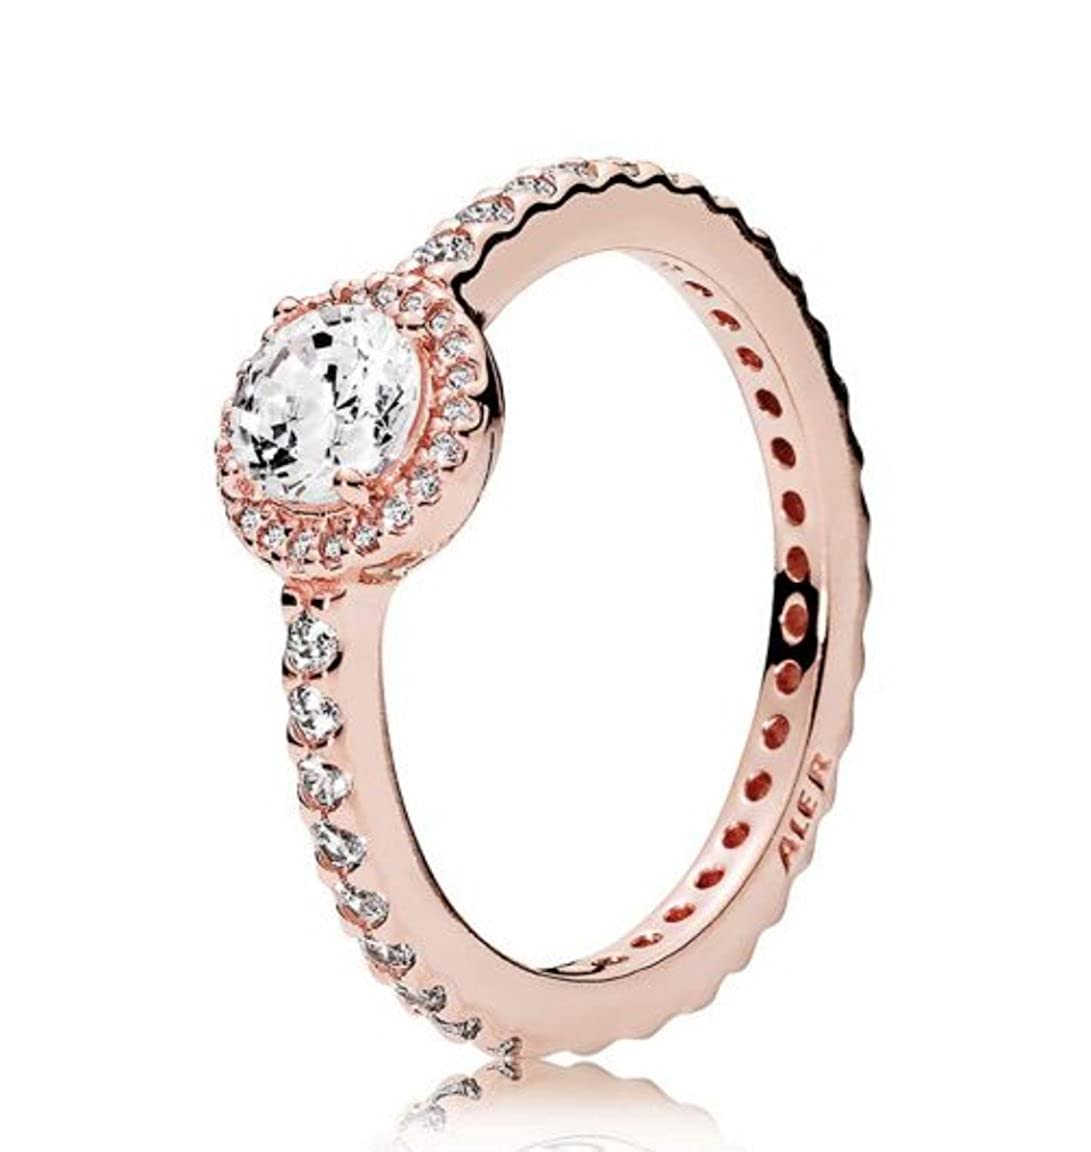 Classic Elegance Ring, Pandora Rose & Clear Cz 180946 Cz by Pandora